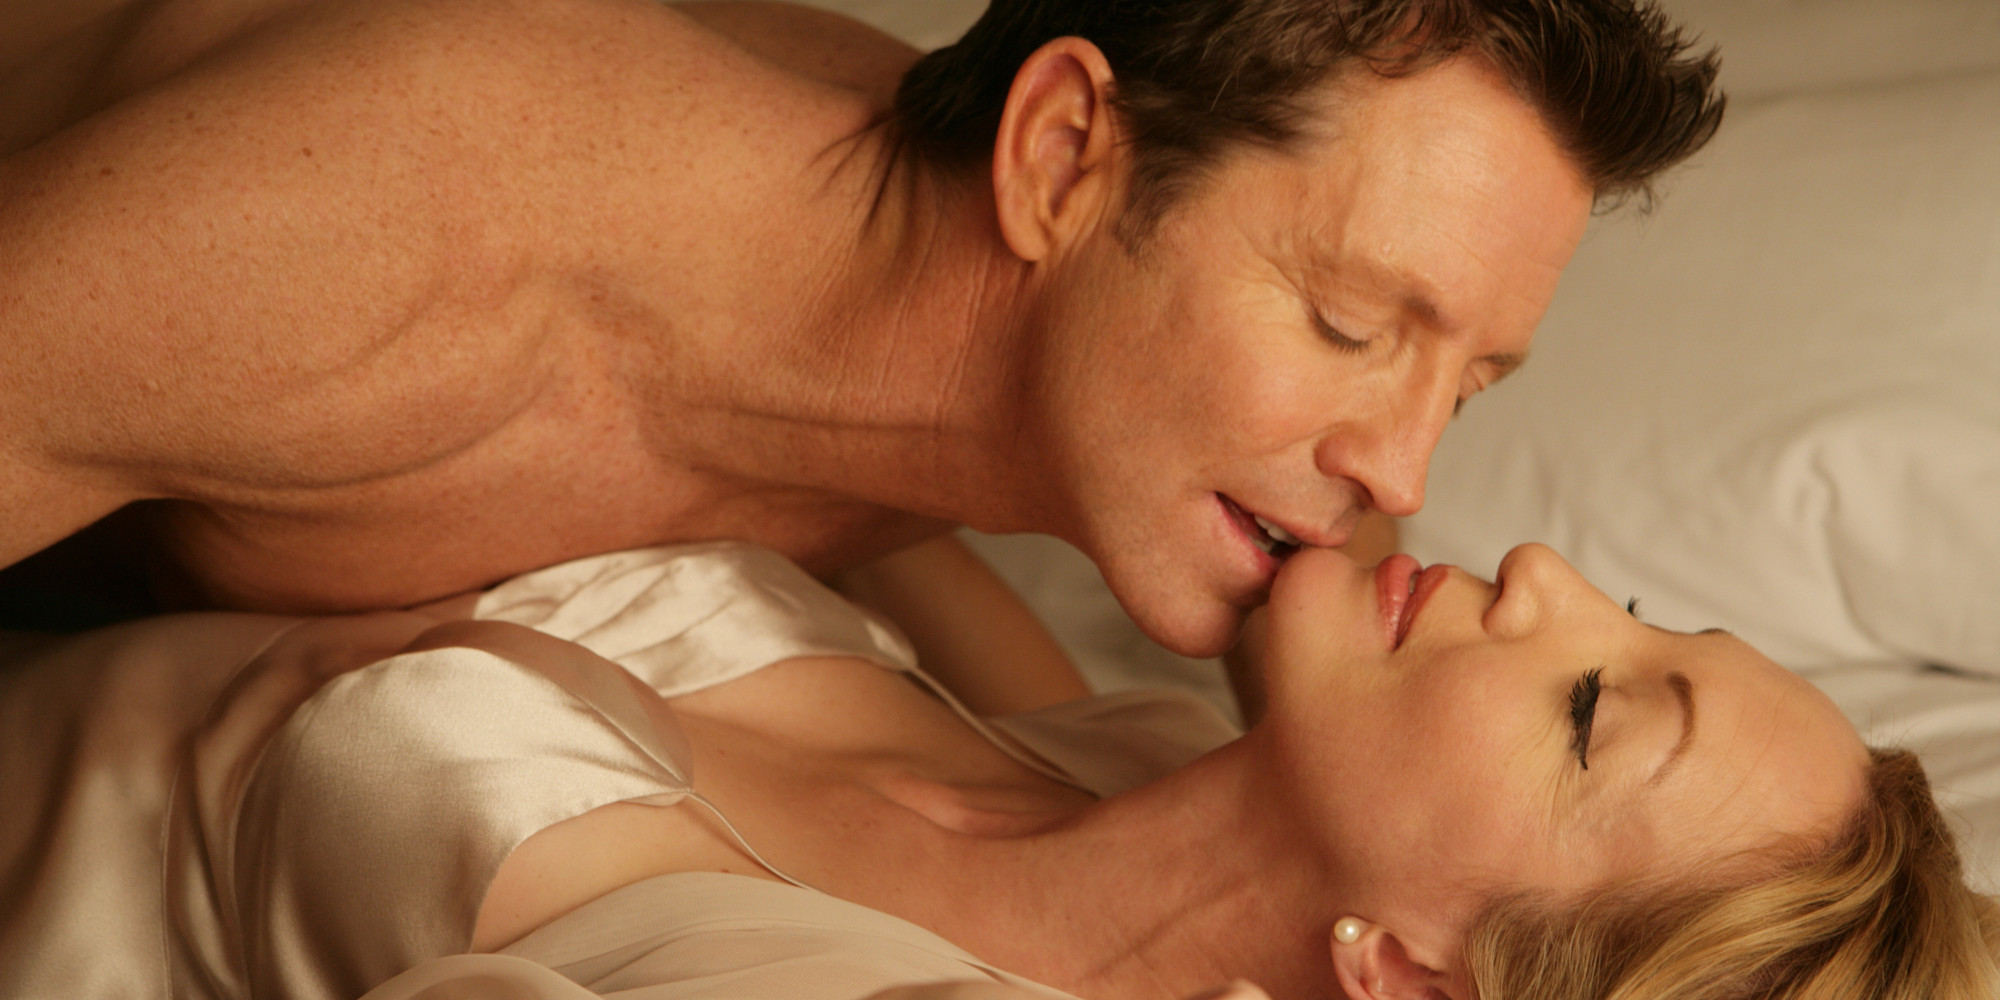 how to give good oral for him